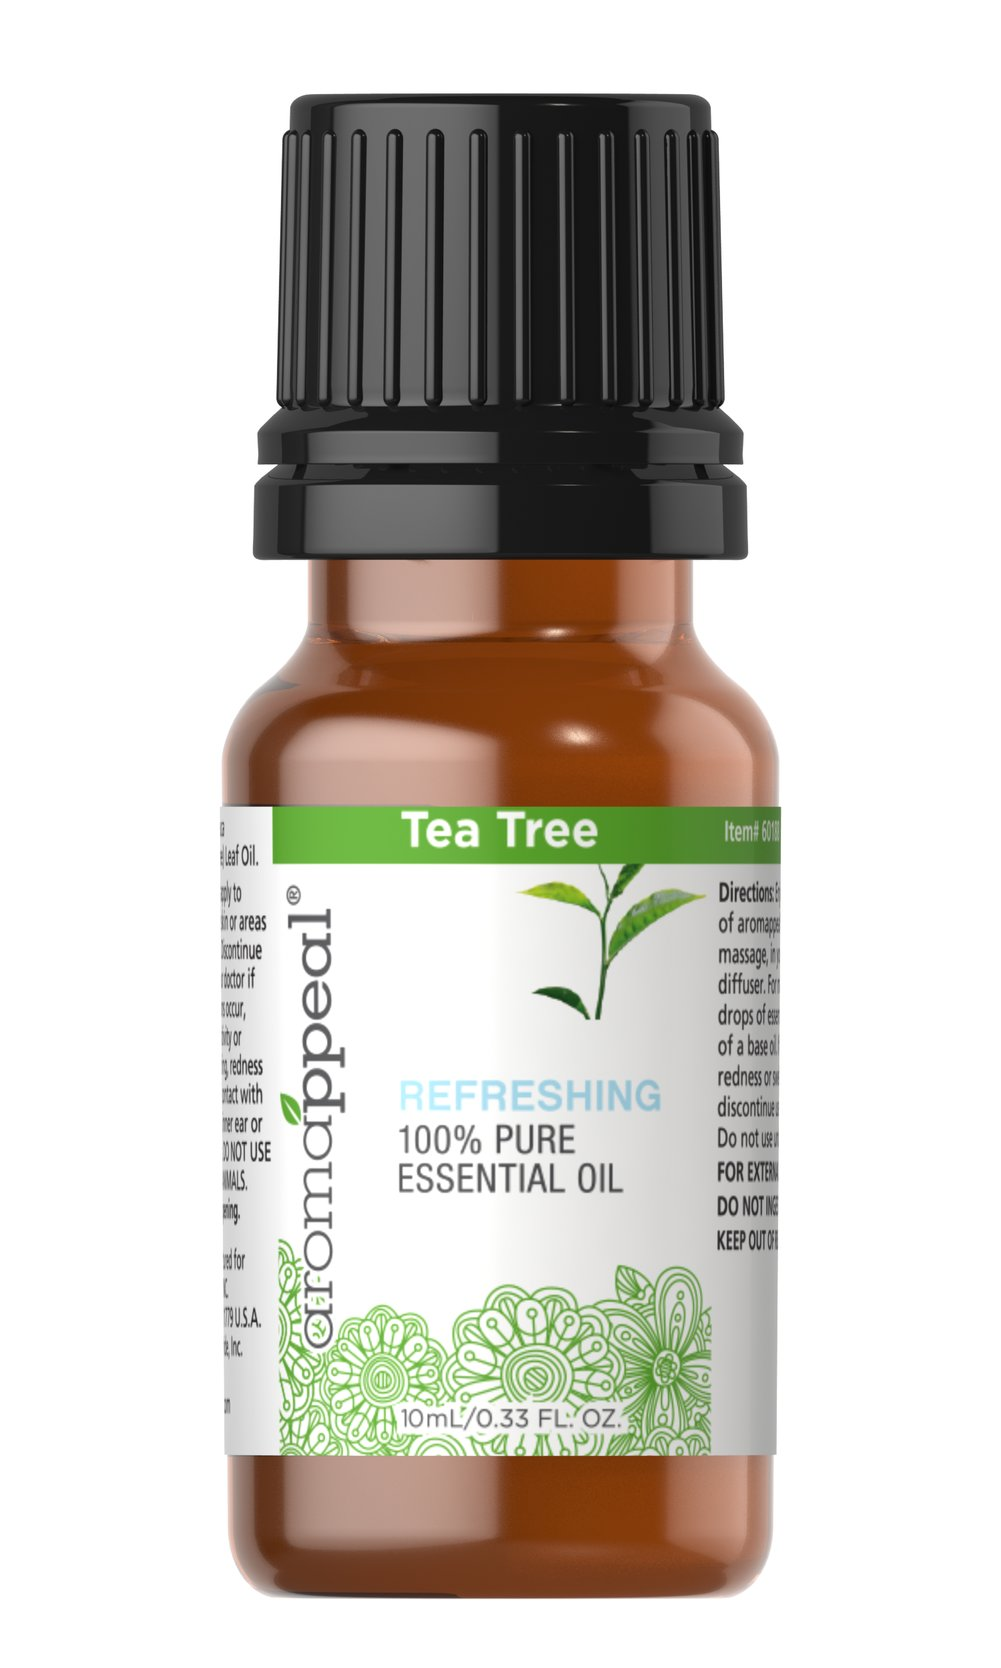 Tea Tree 100% Pure Essential Oil  20 ml Oil  $12.74